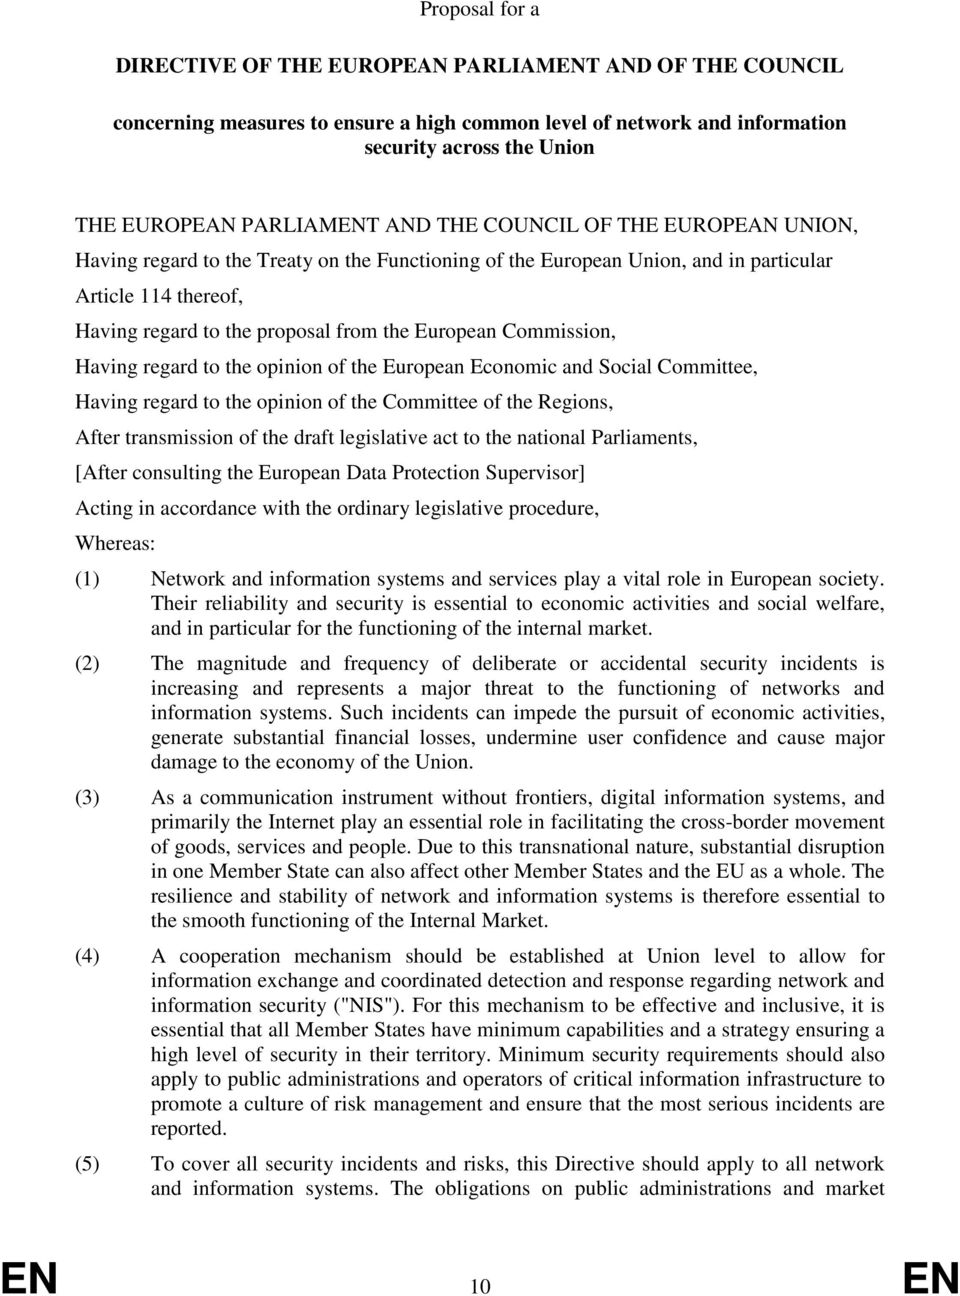 Commission, Having regard to the opinion of the European Economic and Social Committee, Having regard to the opinion of the Committee of the Regions, After transmission of the draft legislative act